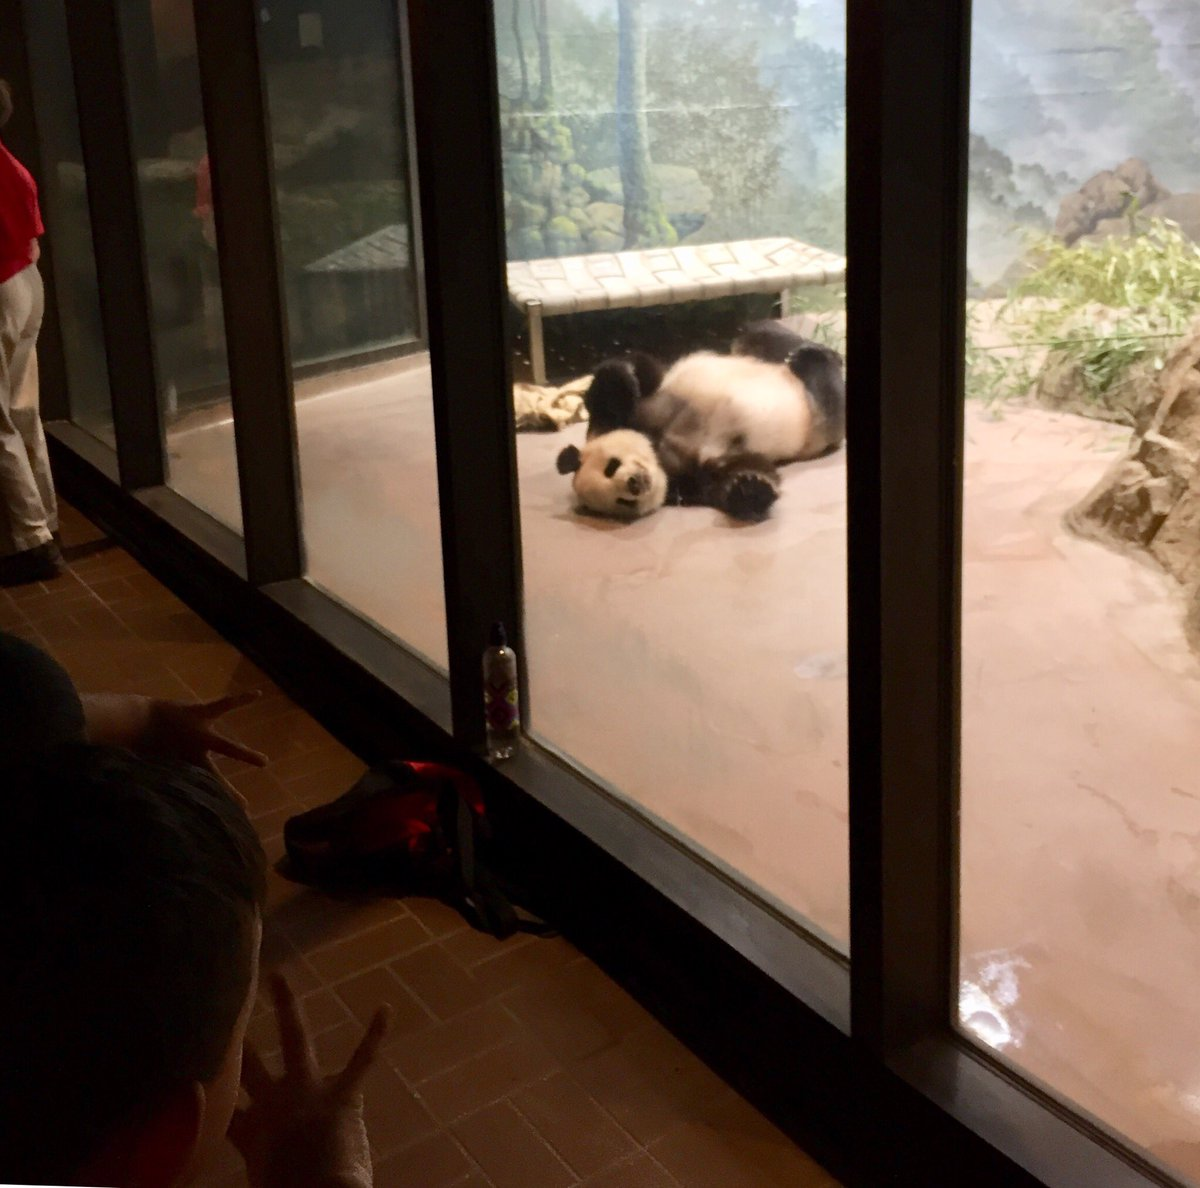 RT <a target='_blank' href='http://twitter.com/LorenaBev'>@LorenaBev</a>: Fun times at the zoo today! 🐼🐘🐊 <a target='_blank' href='http://twitter.com/apscspr'>@apscspr</a> <a target='_blank' href='https://t.co/xmKfJ4pQzU'>https://t.co/xmKfJ4pQzU</a>